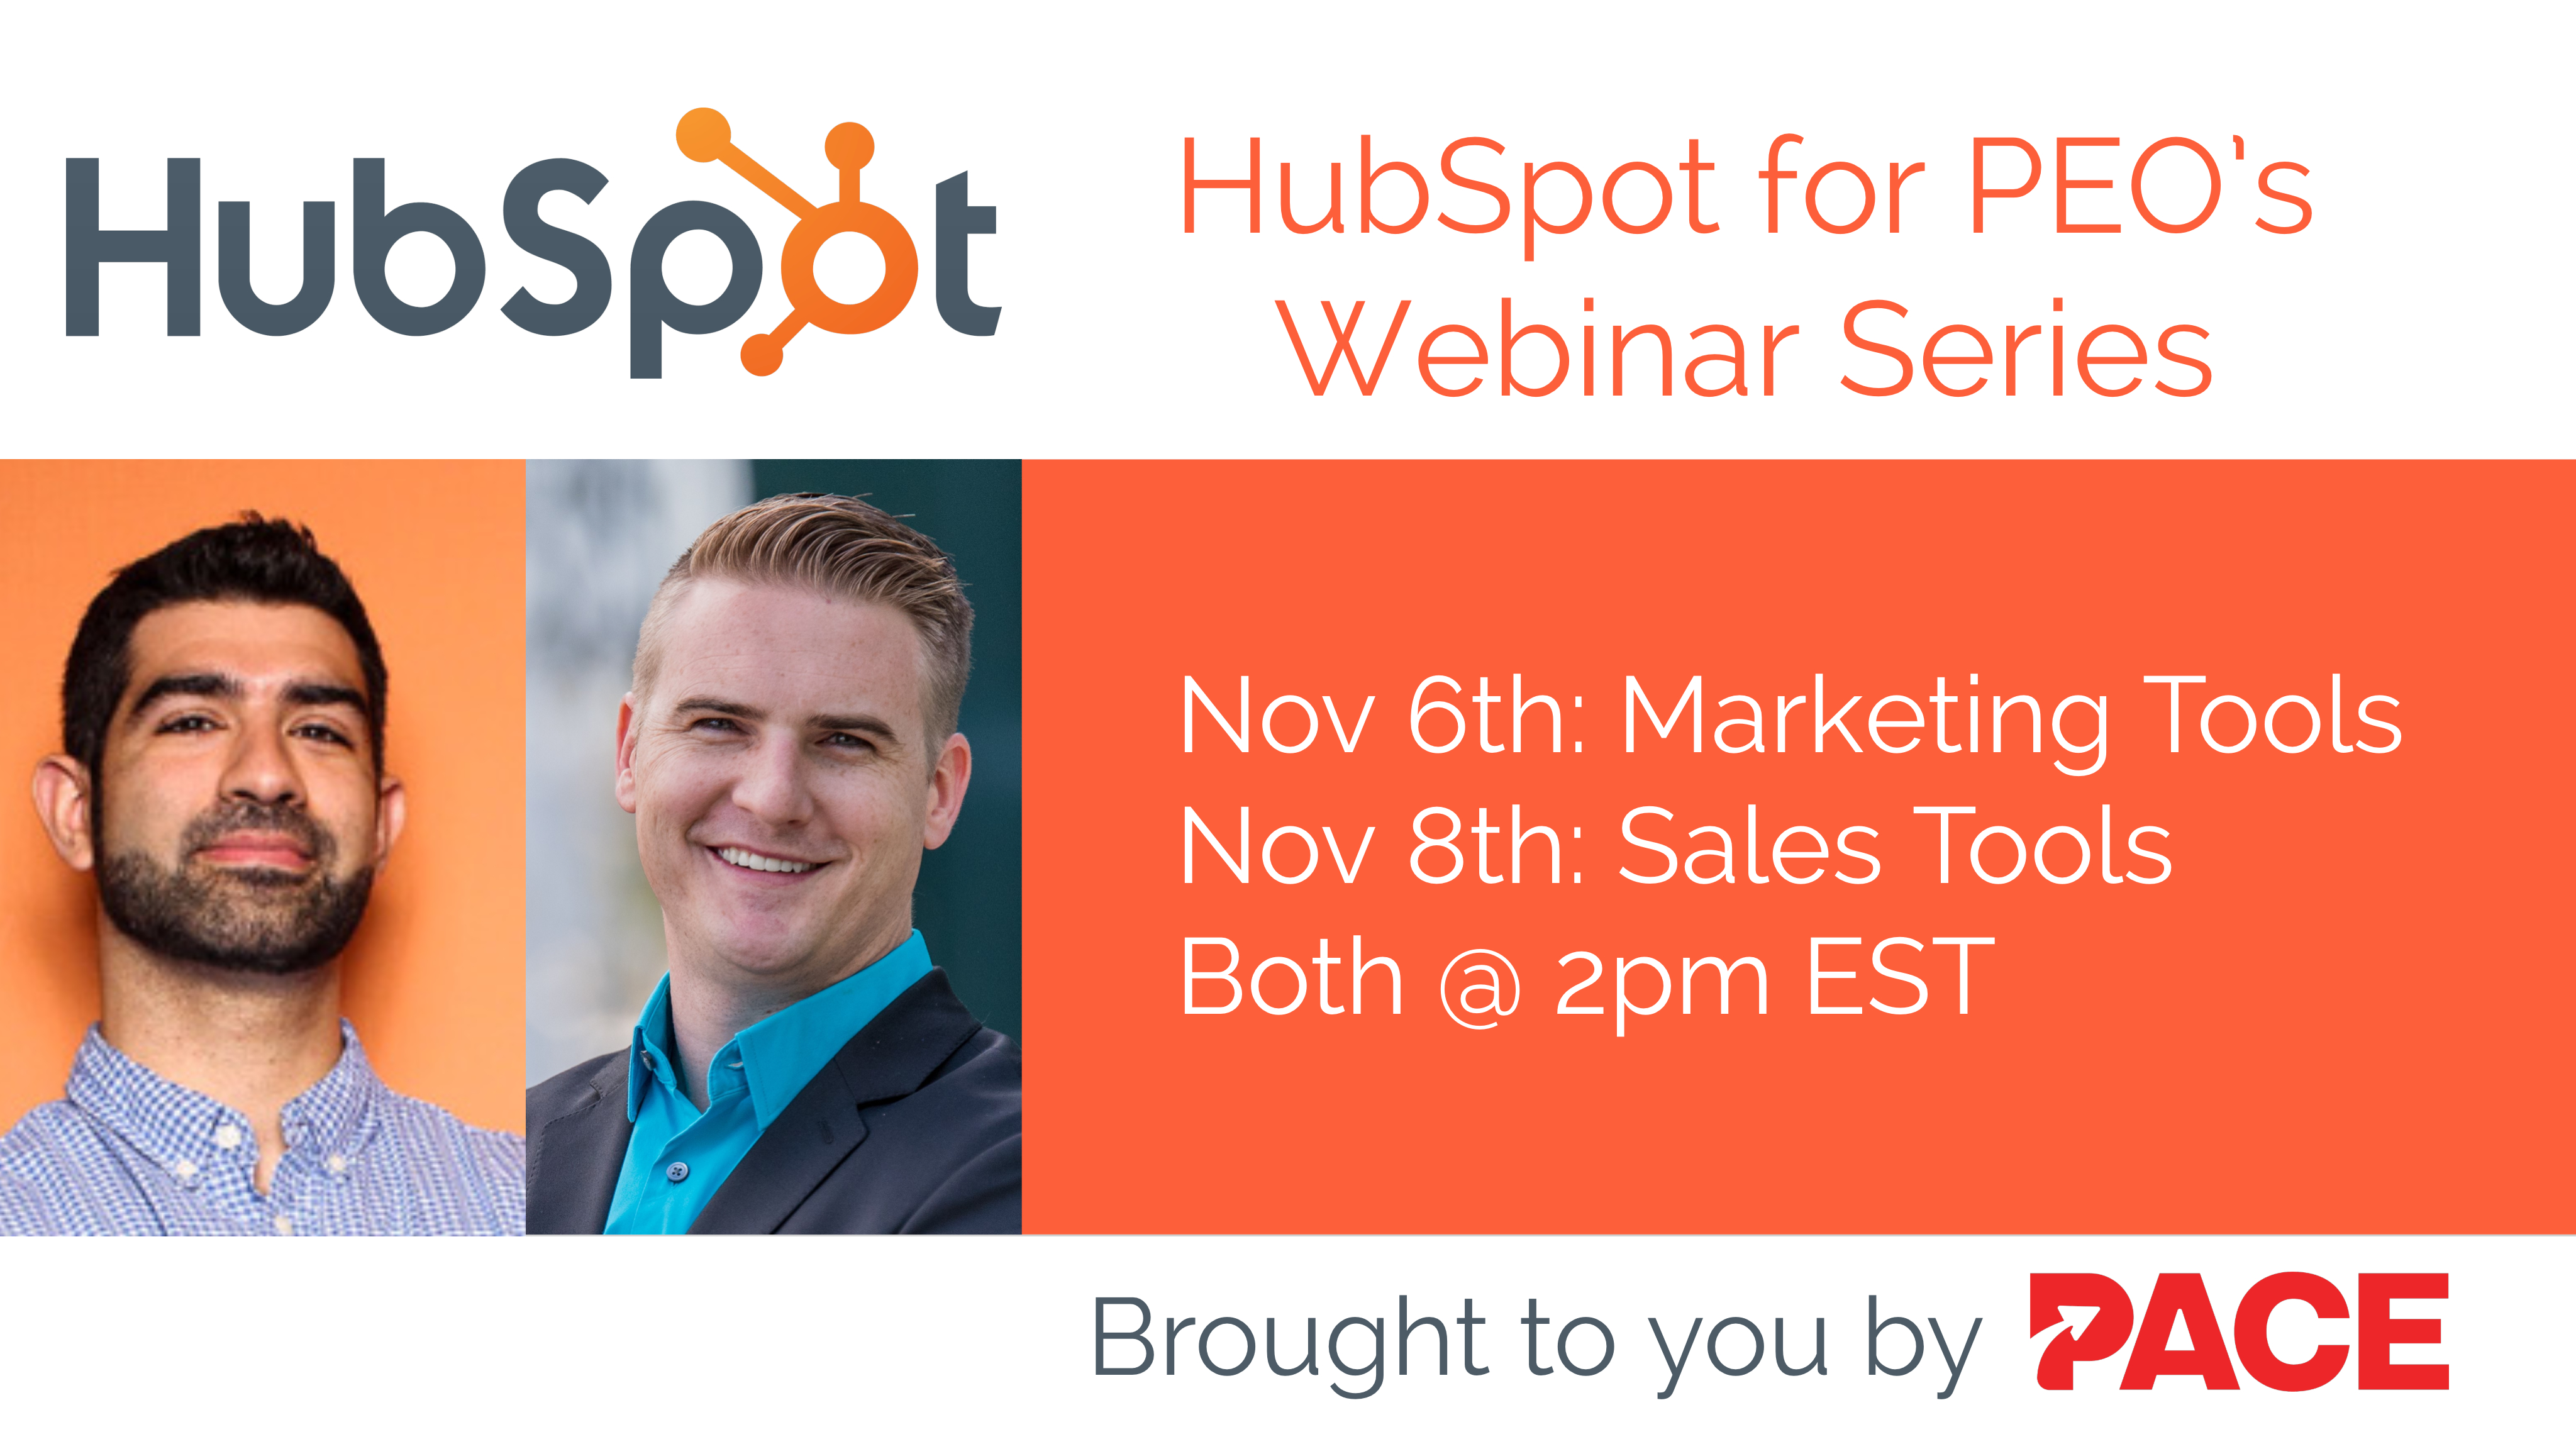 PACE HubSpot Sales & Marketing Webinar Series Blog Image